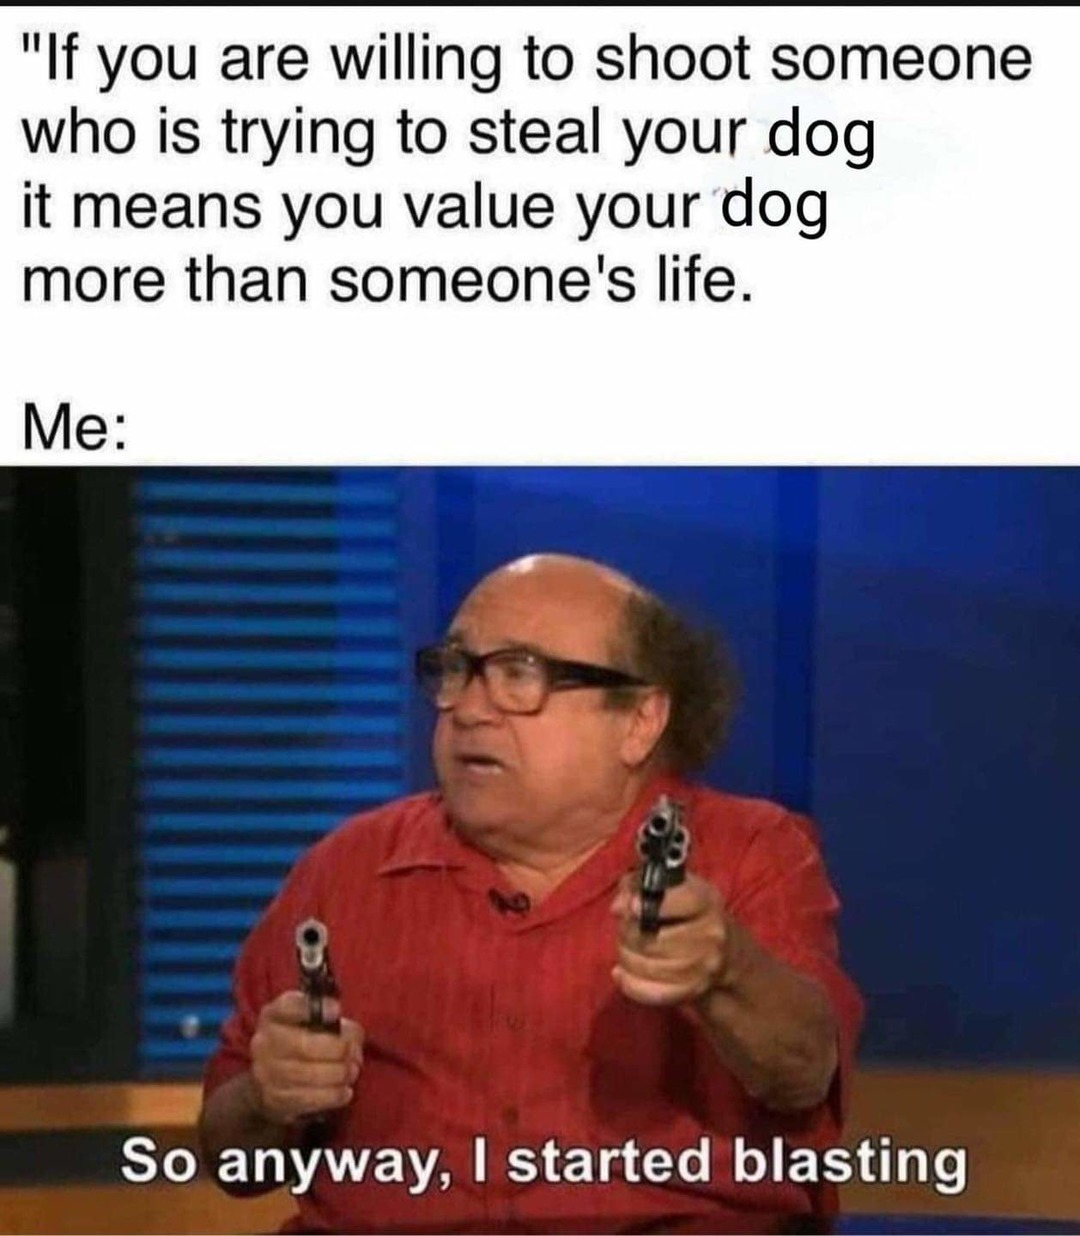 My dog is better than most people - meme